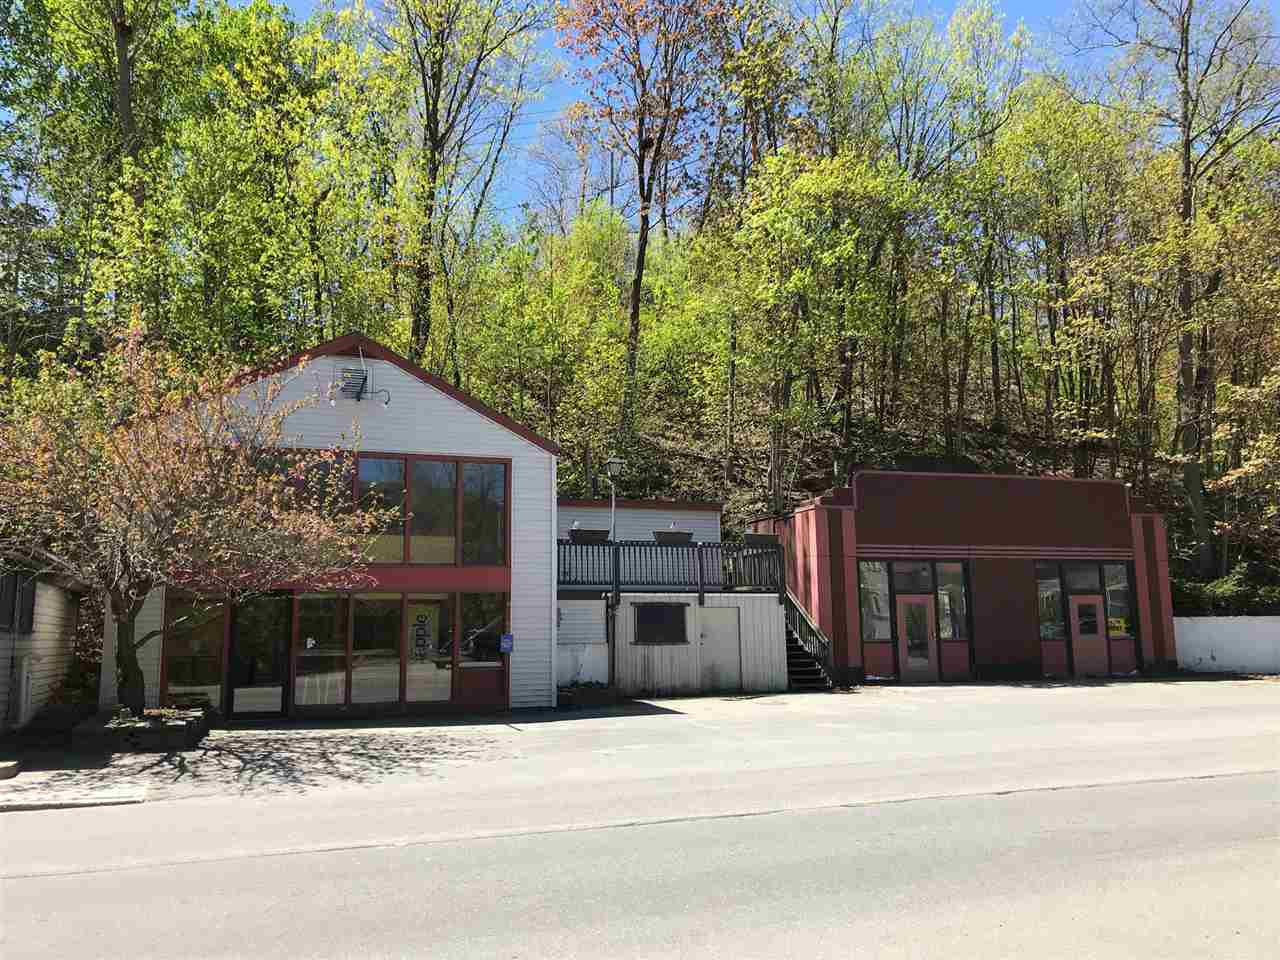 VILLAGE OF BELLOWS FALLS IN TOWN OF ROCKINGHAM VT Commercial Property for sale $$159,000 | $81 per sq.ft.